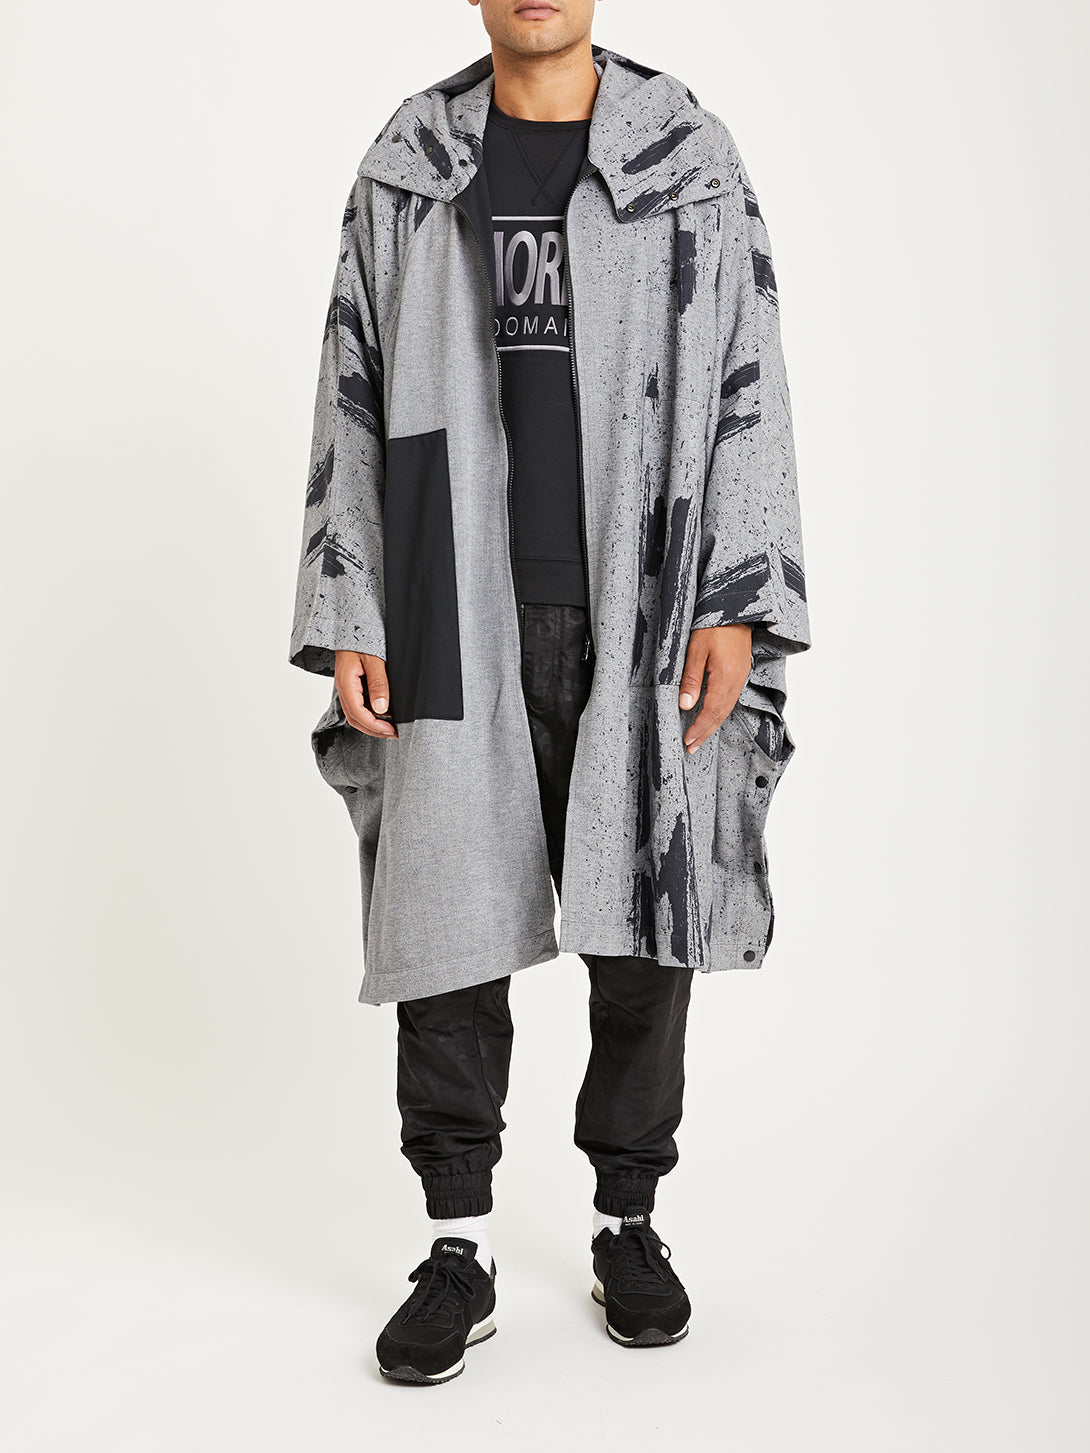 TREAD CAMO ONS x DTT creative live collaboration  double knit poncho